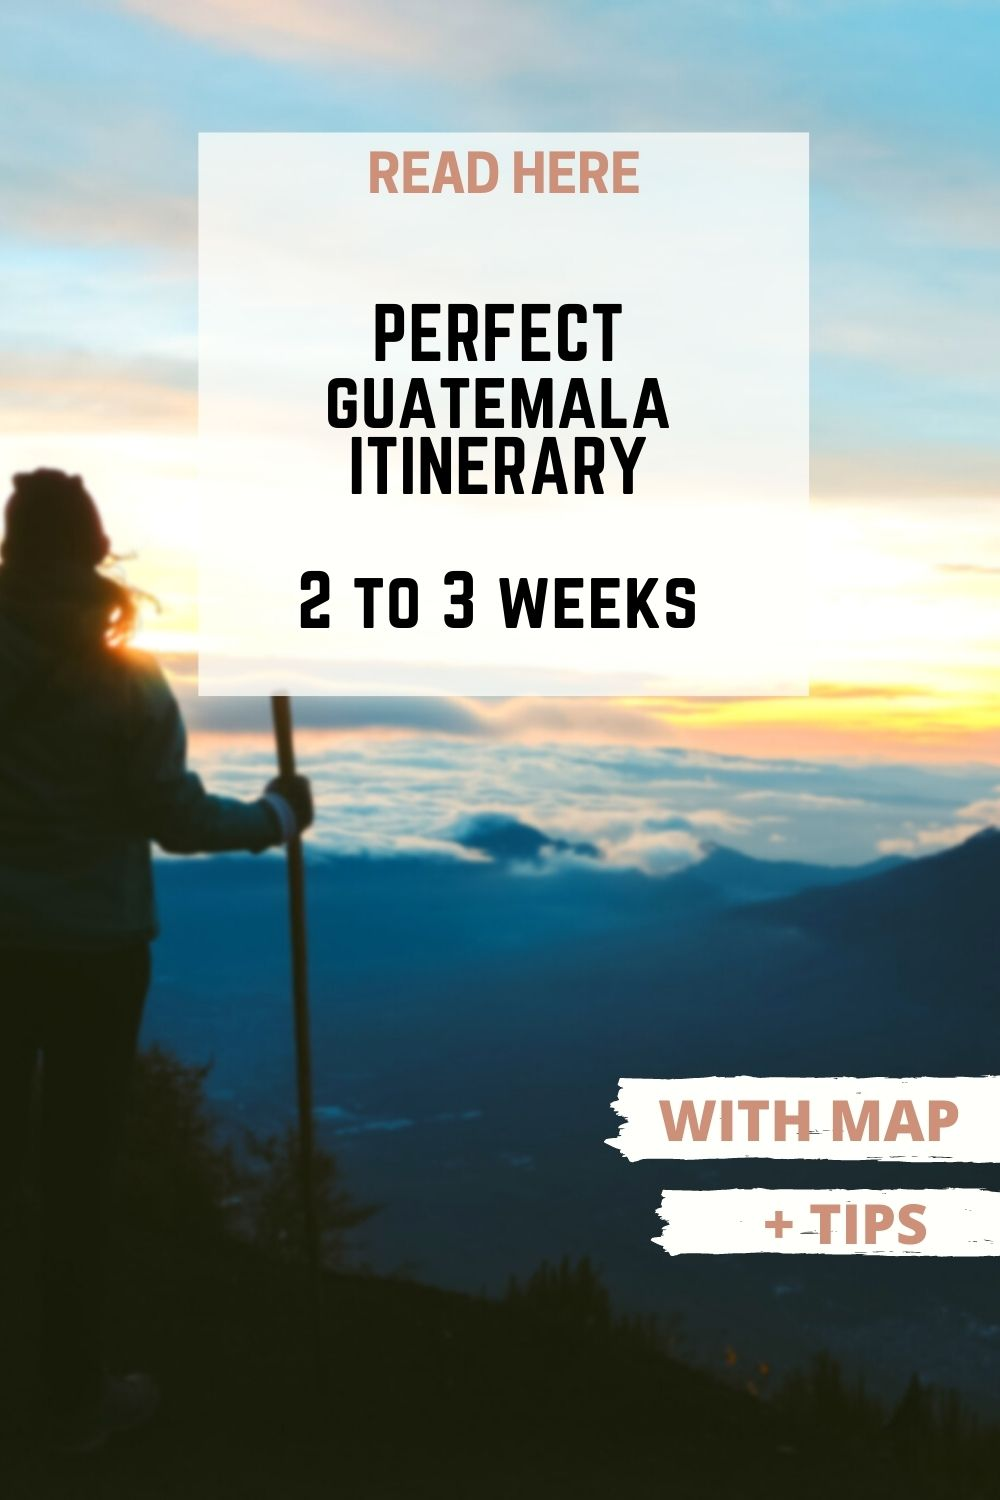 Guatemala itinerary: best places to visit in Guatemala for 2 to 3 weeks